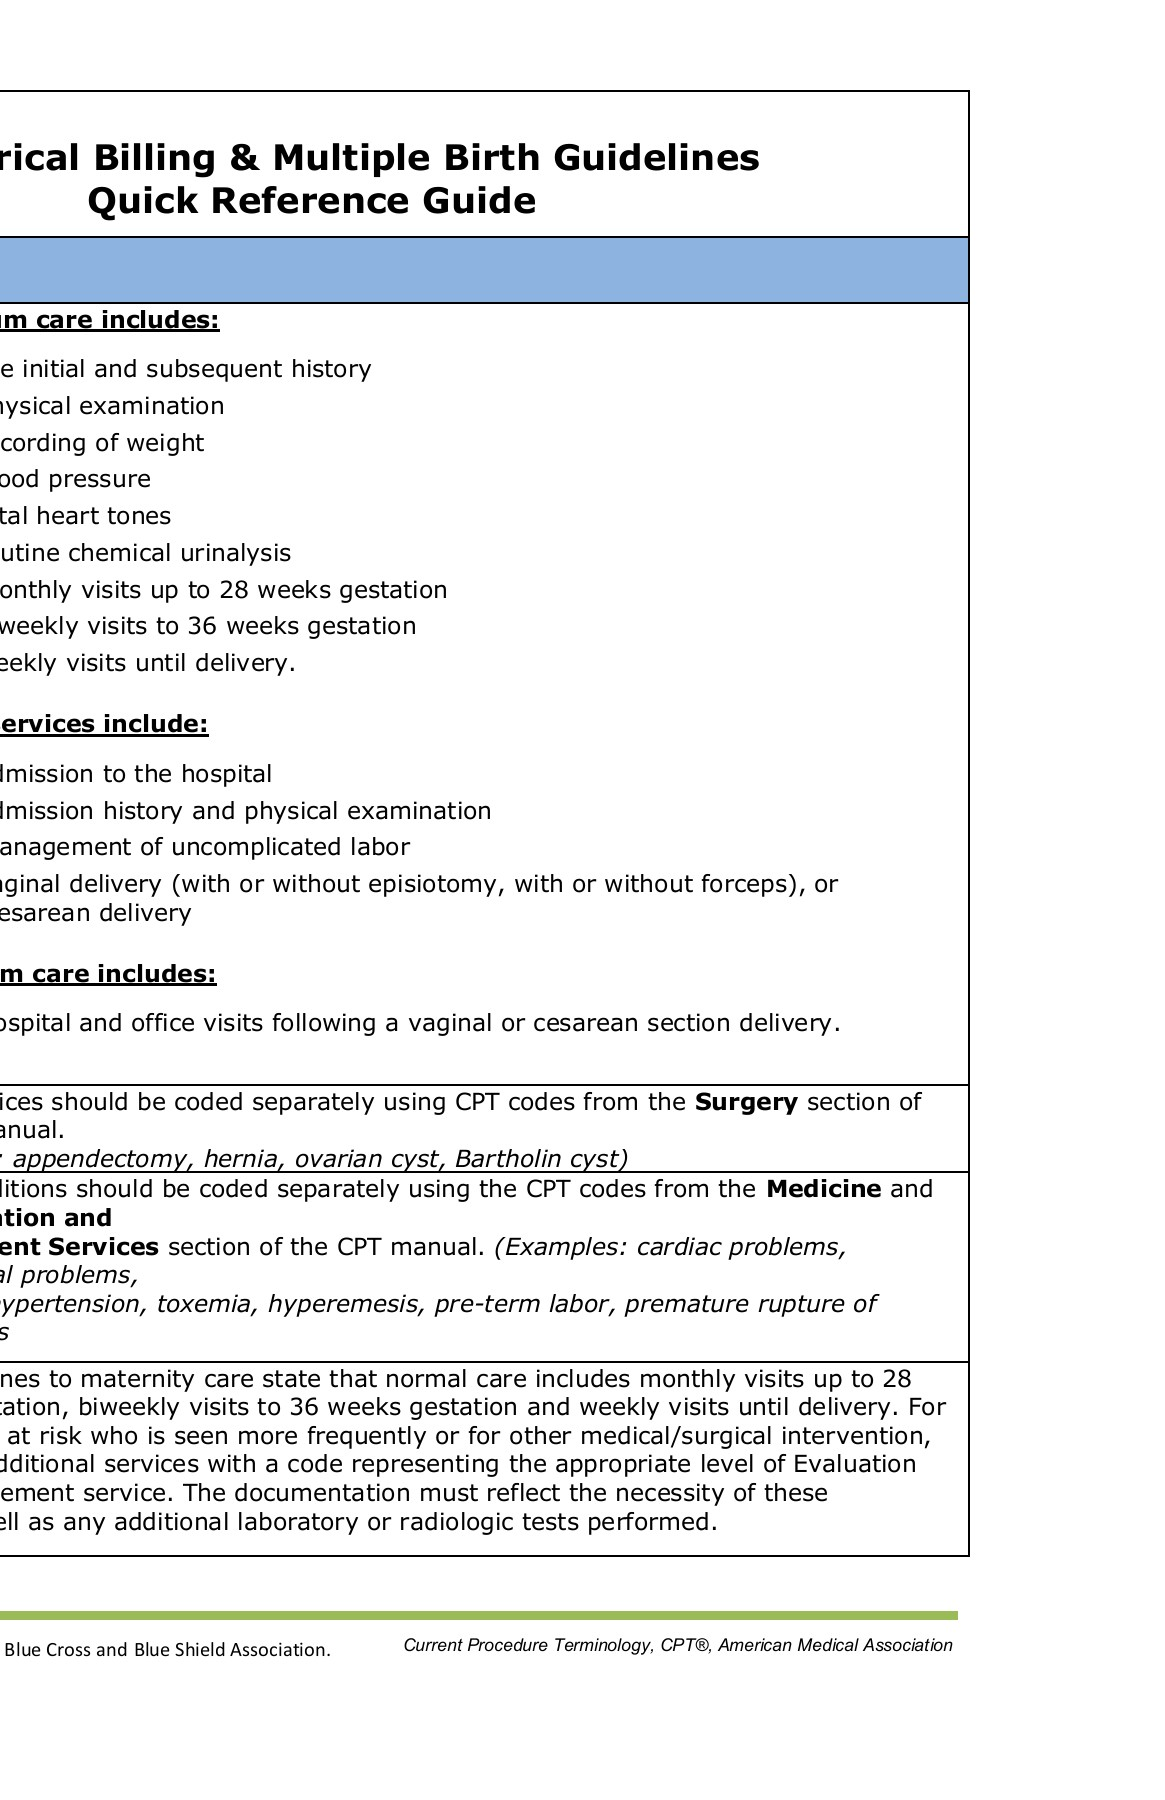 Obstetrical Billing Guidelines - Blue Cross and    Pages 1